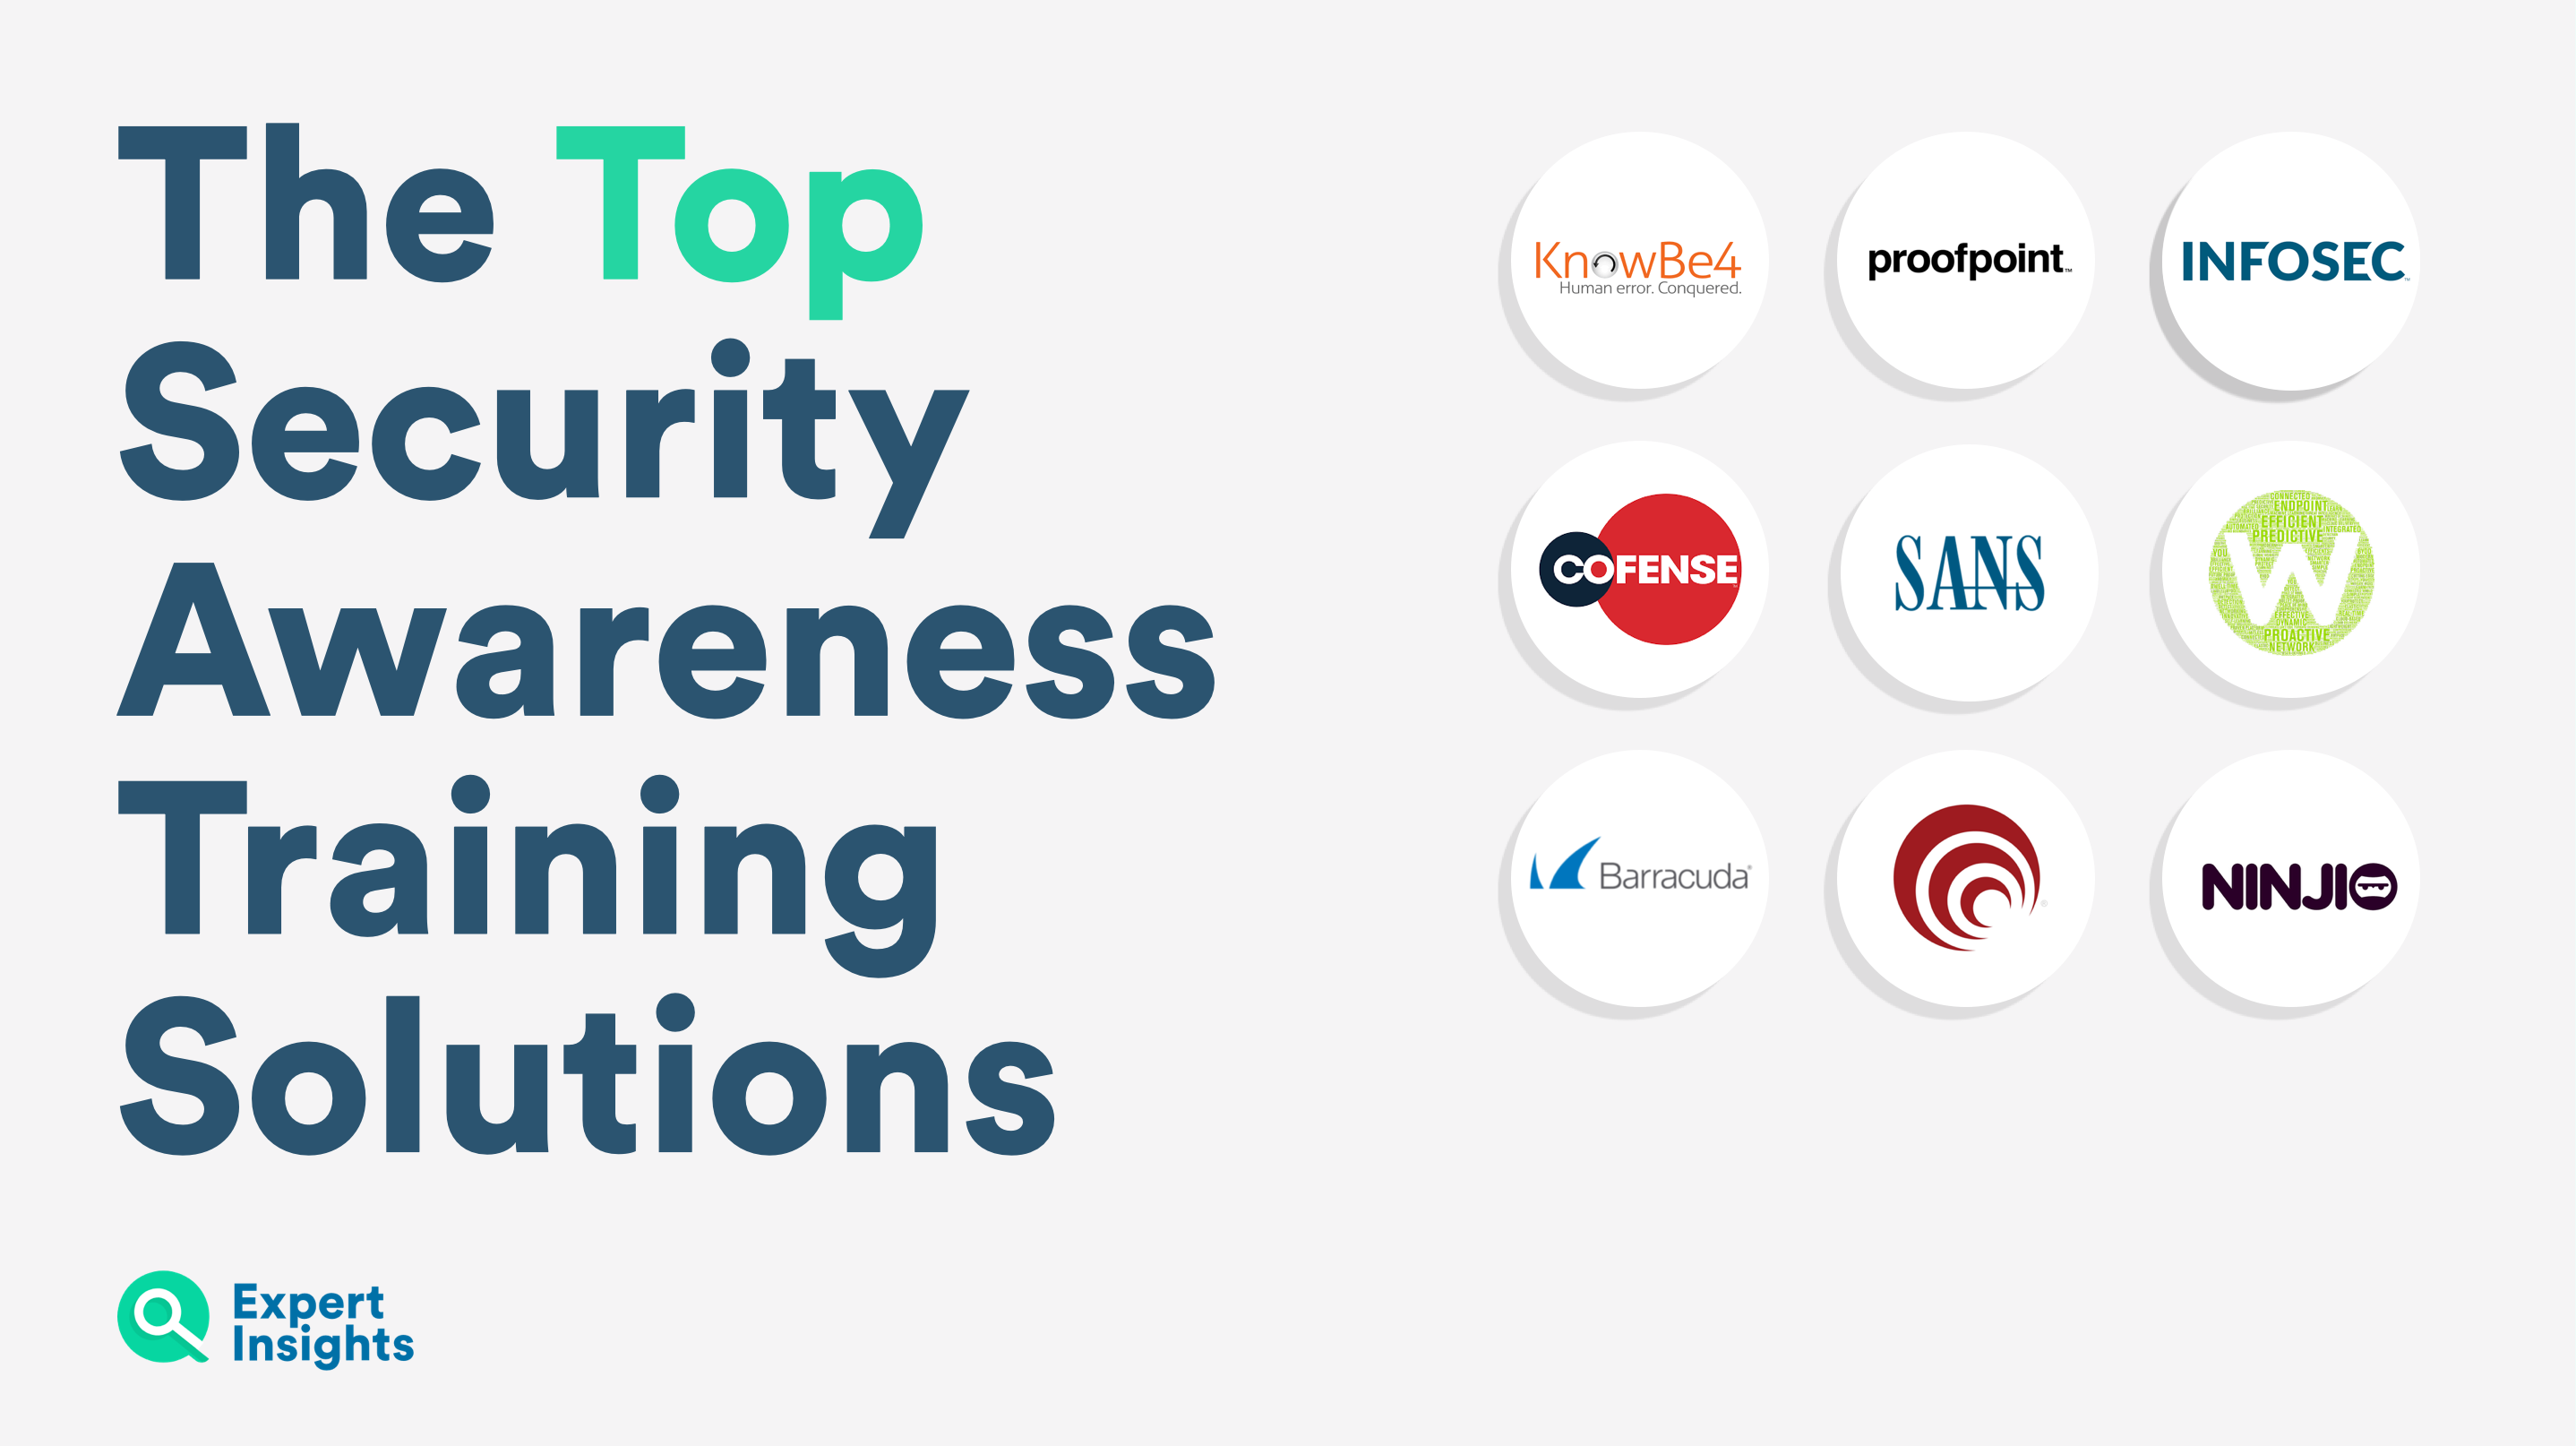 The Top Security Awareness Training Solutions - Expert Insights